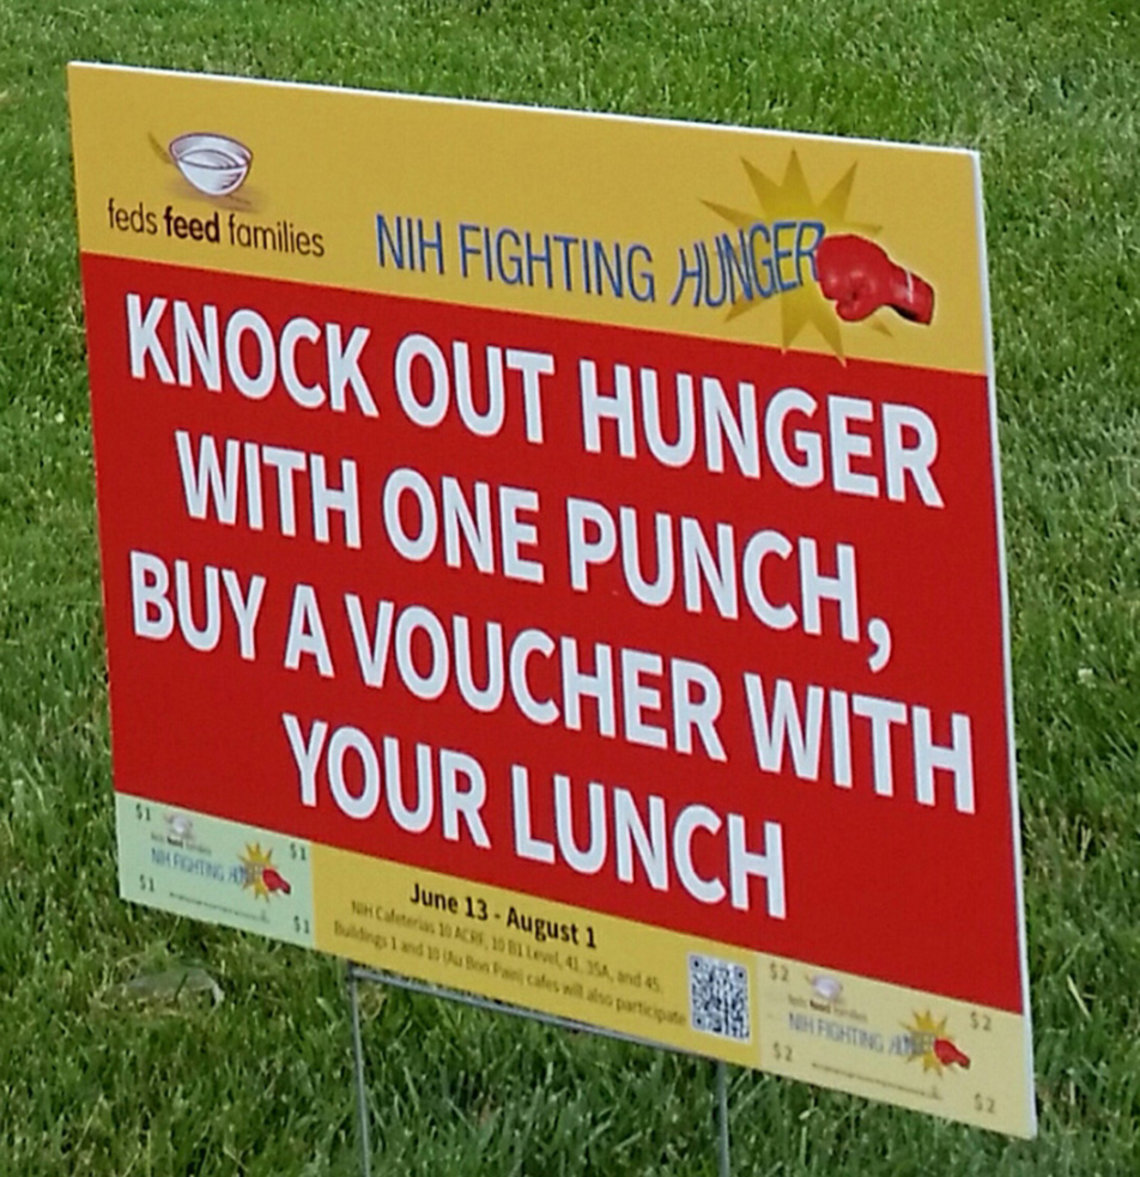 Red sign on lawn reads: knock out hunger with one punch, buy a voucher with your lunch.